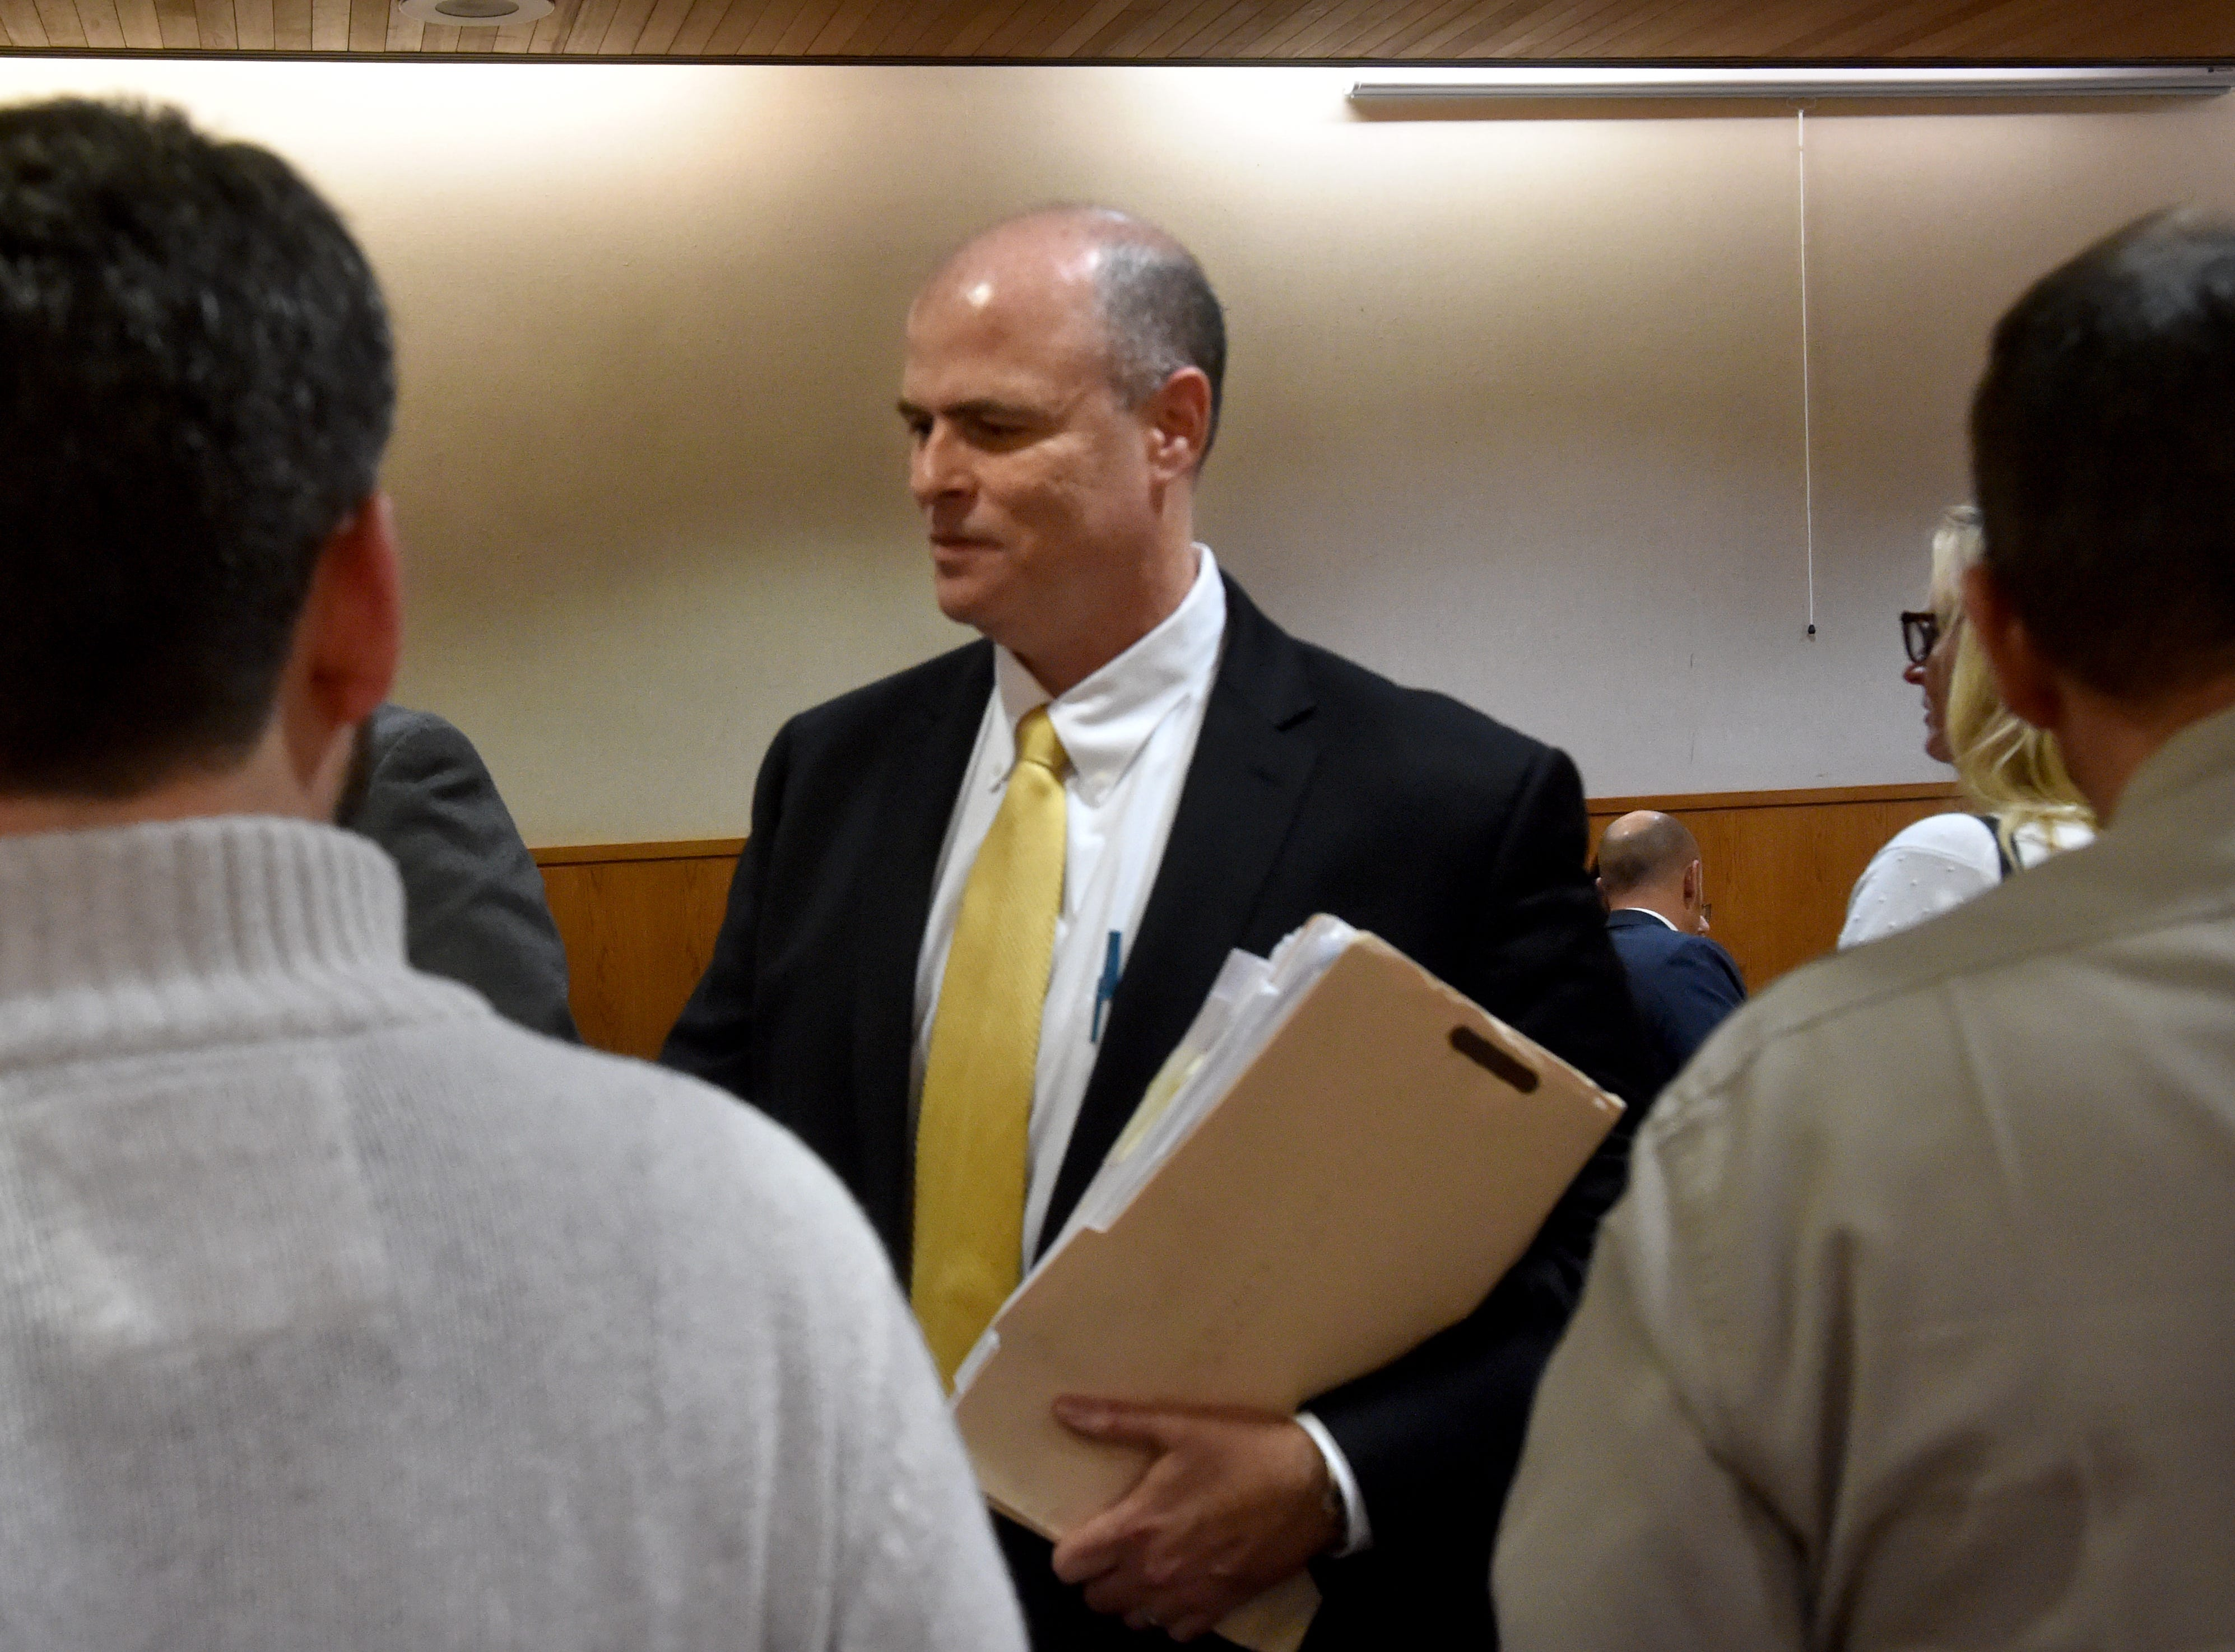 Senior Deputy District Attorney John Barrick receives congratulations after jurors found Mayra Chavez guilty of second-degree murder of her 3-year-old daughter Kimberly Lopez. Chavez was also found guilty of assault and torture charges.